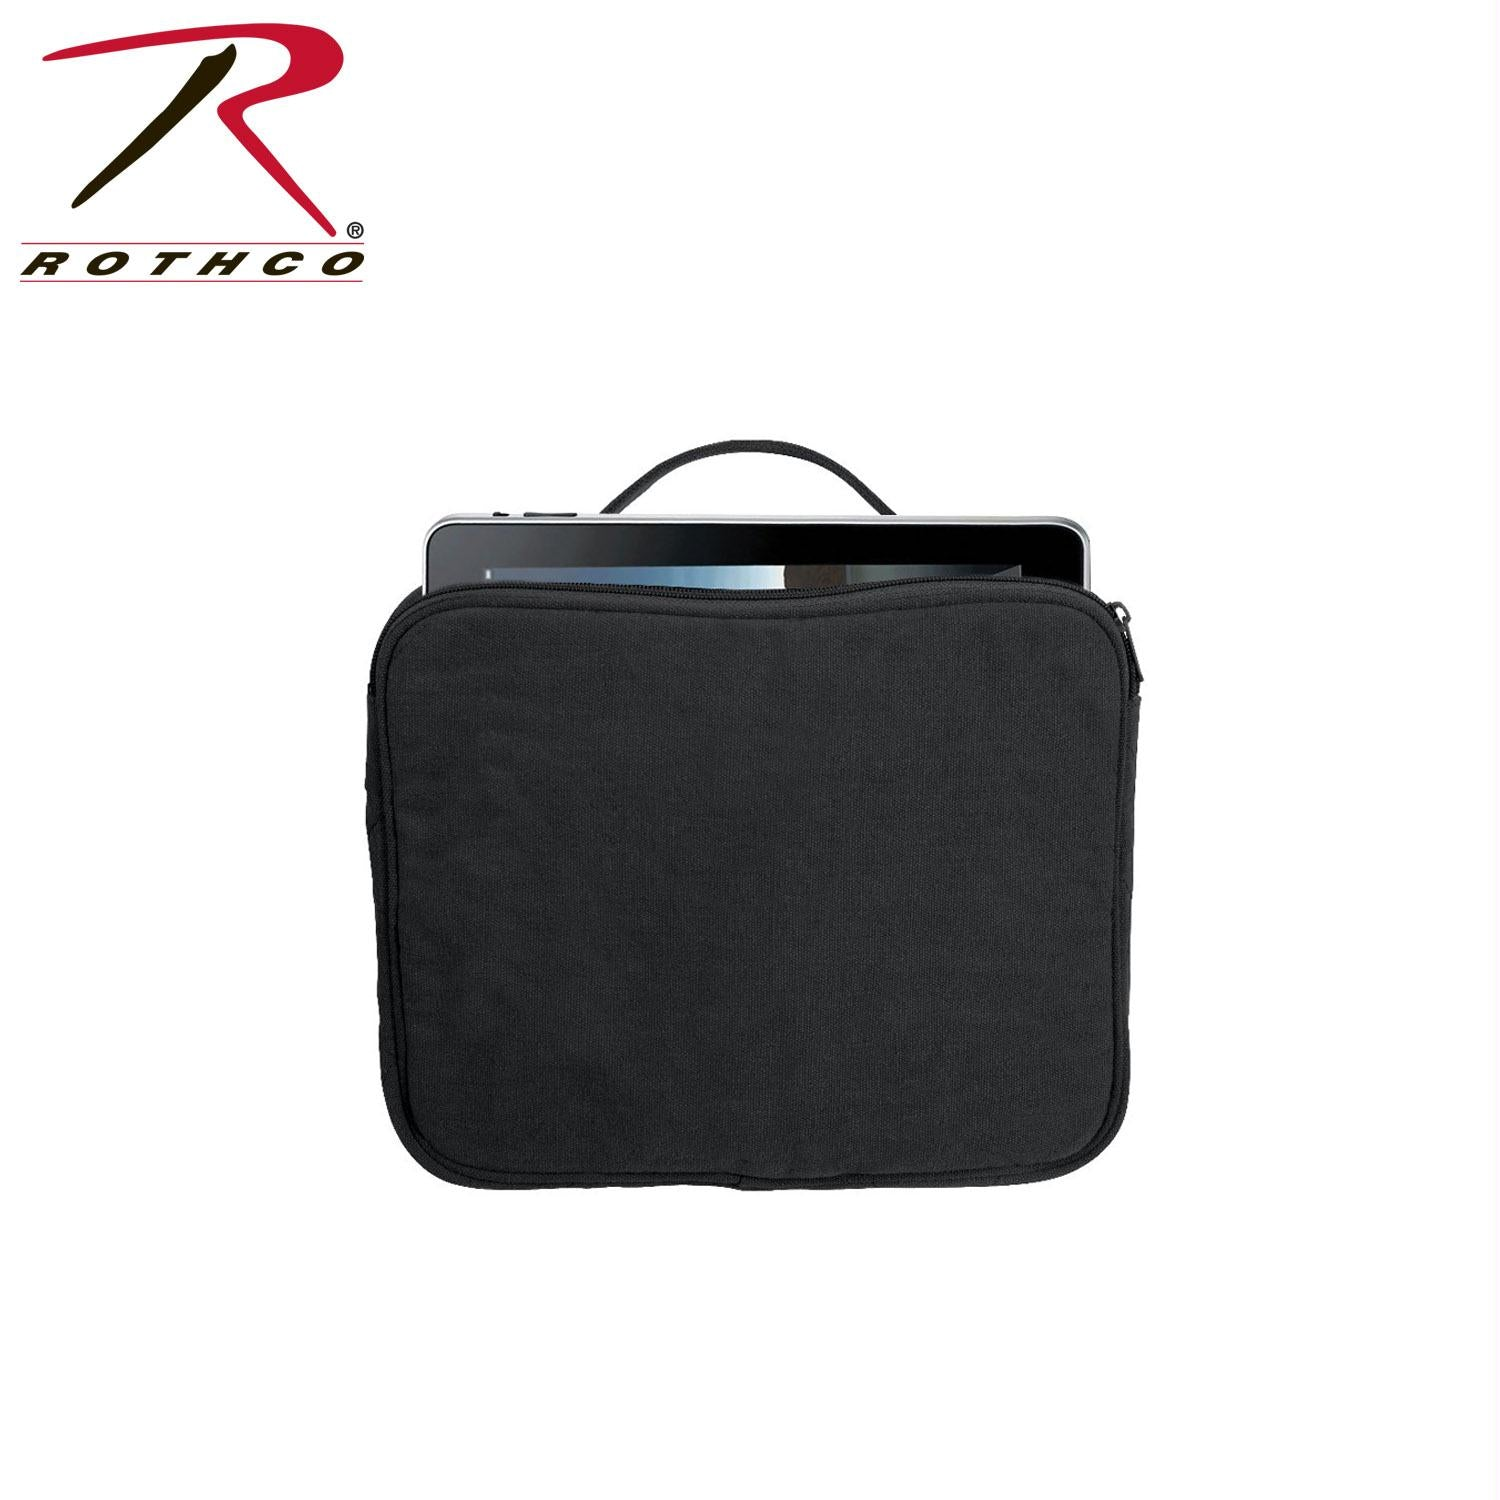 Rothco Vintage Canvas iPad / Netbook Pouch - Black